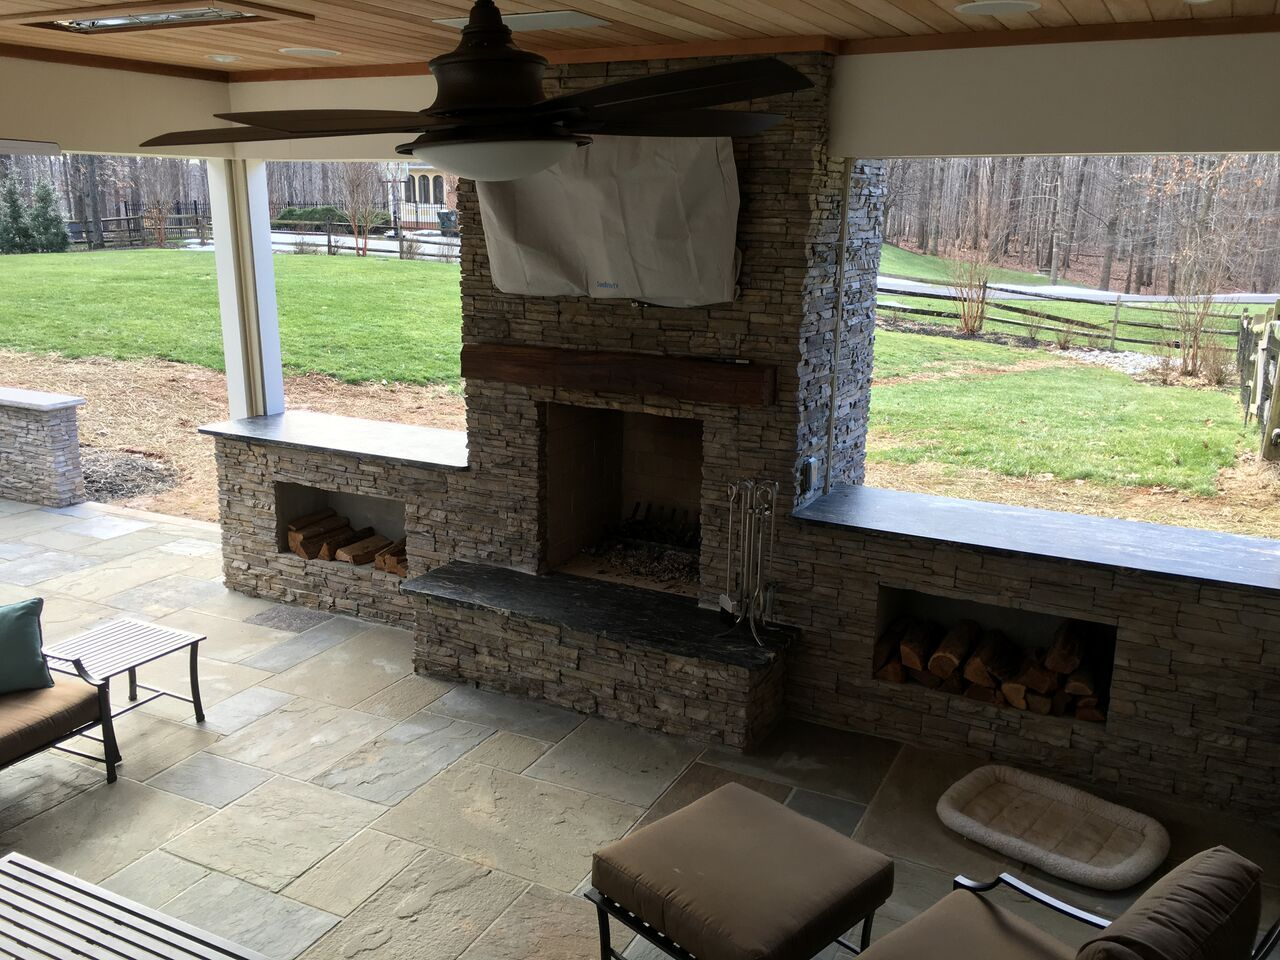 Top 3 Considerations For Building An Outdoor Wood Burning Fireplace